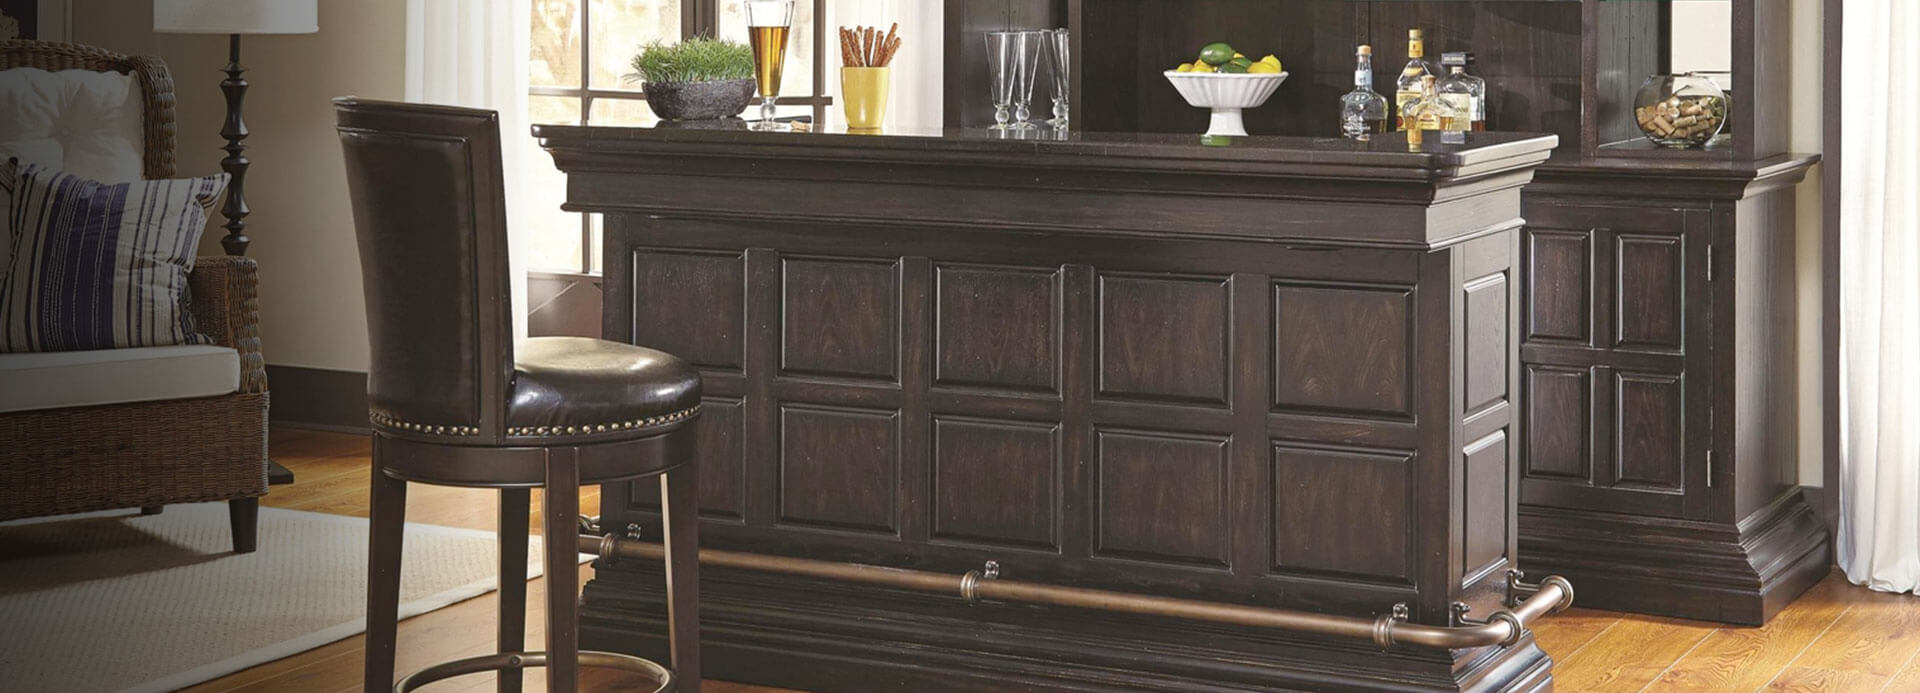 bar furniture savings TYLRUKL